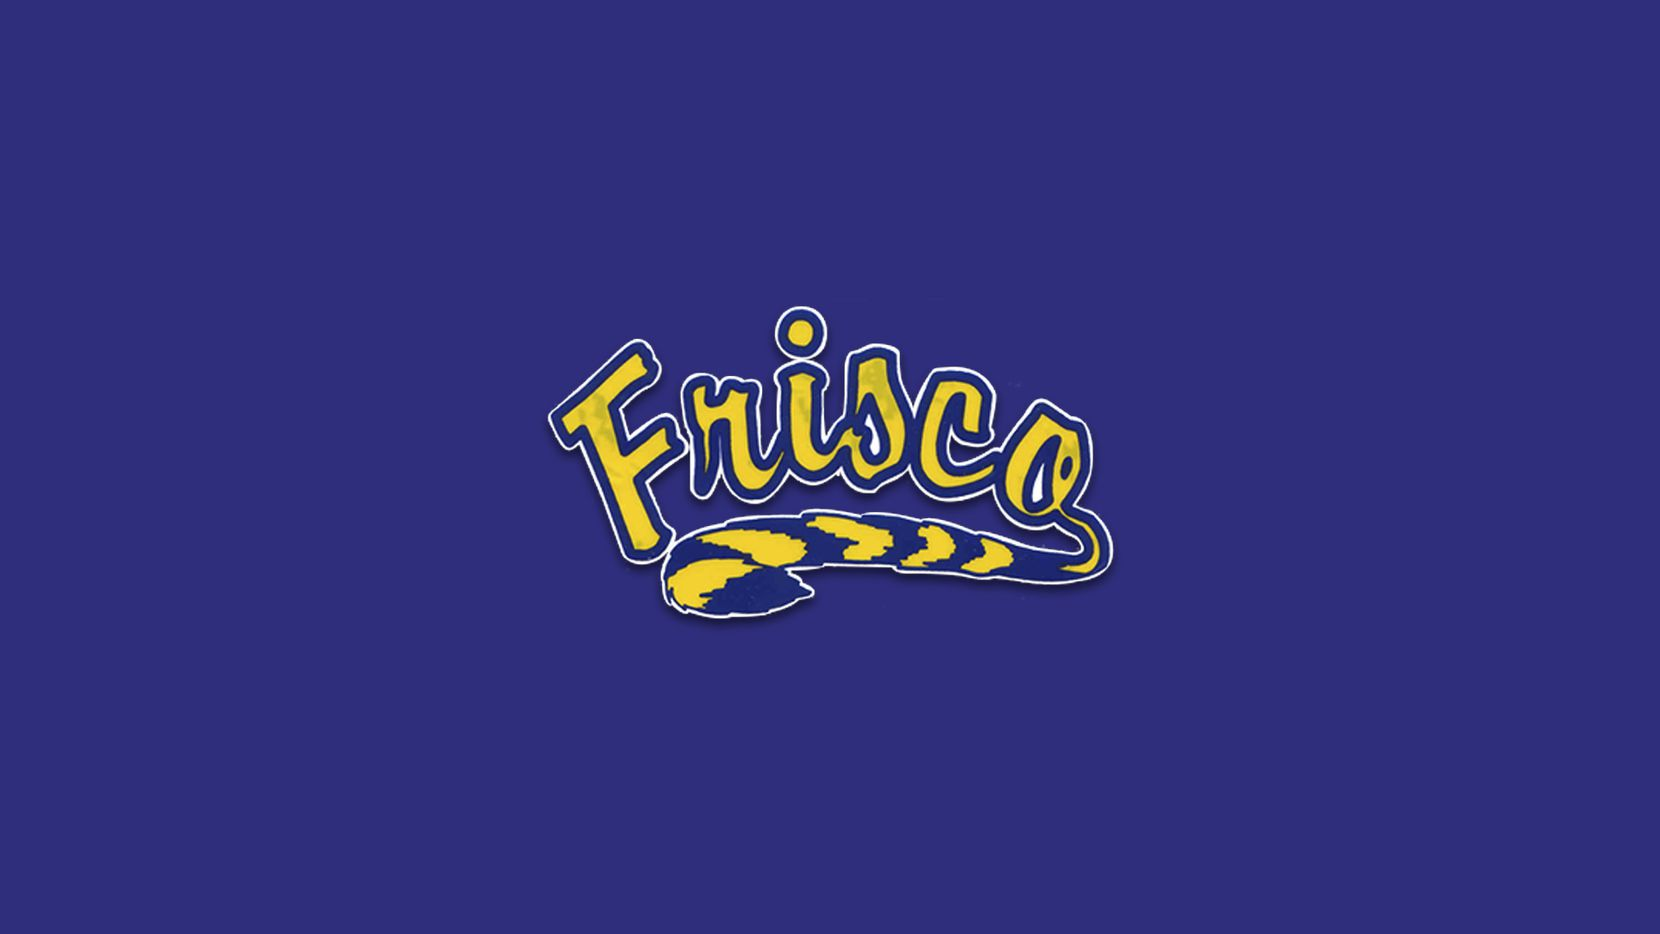 Frisco has high expectations for the 2020 season after winnings its district and finishing 11-2 in 2019.